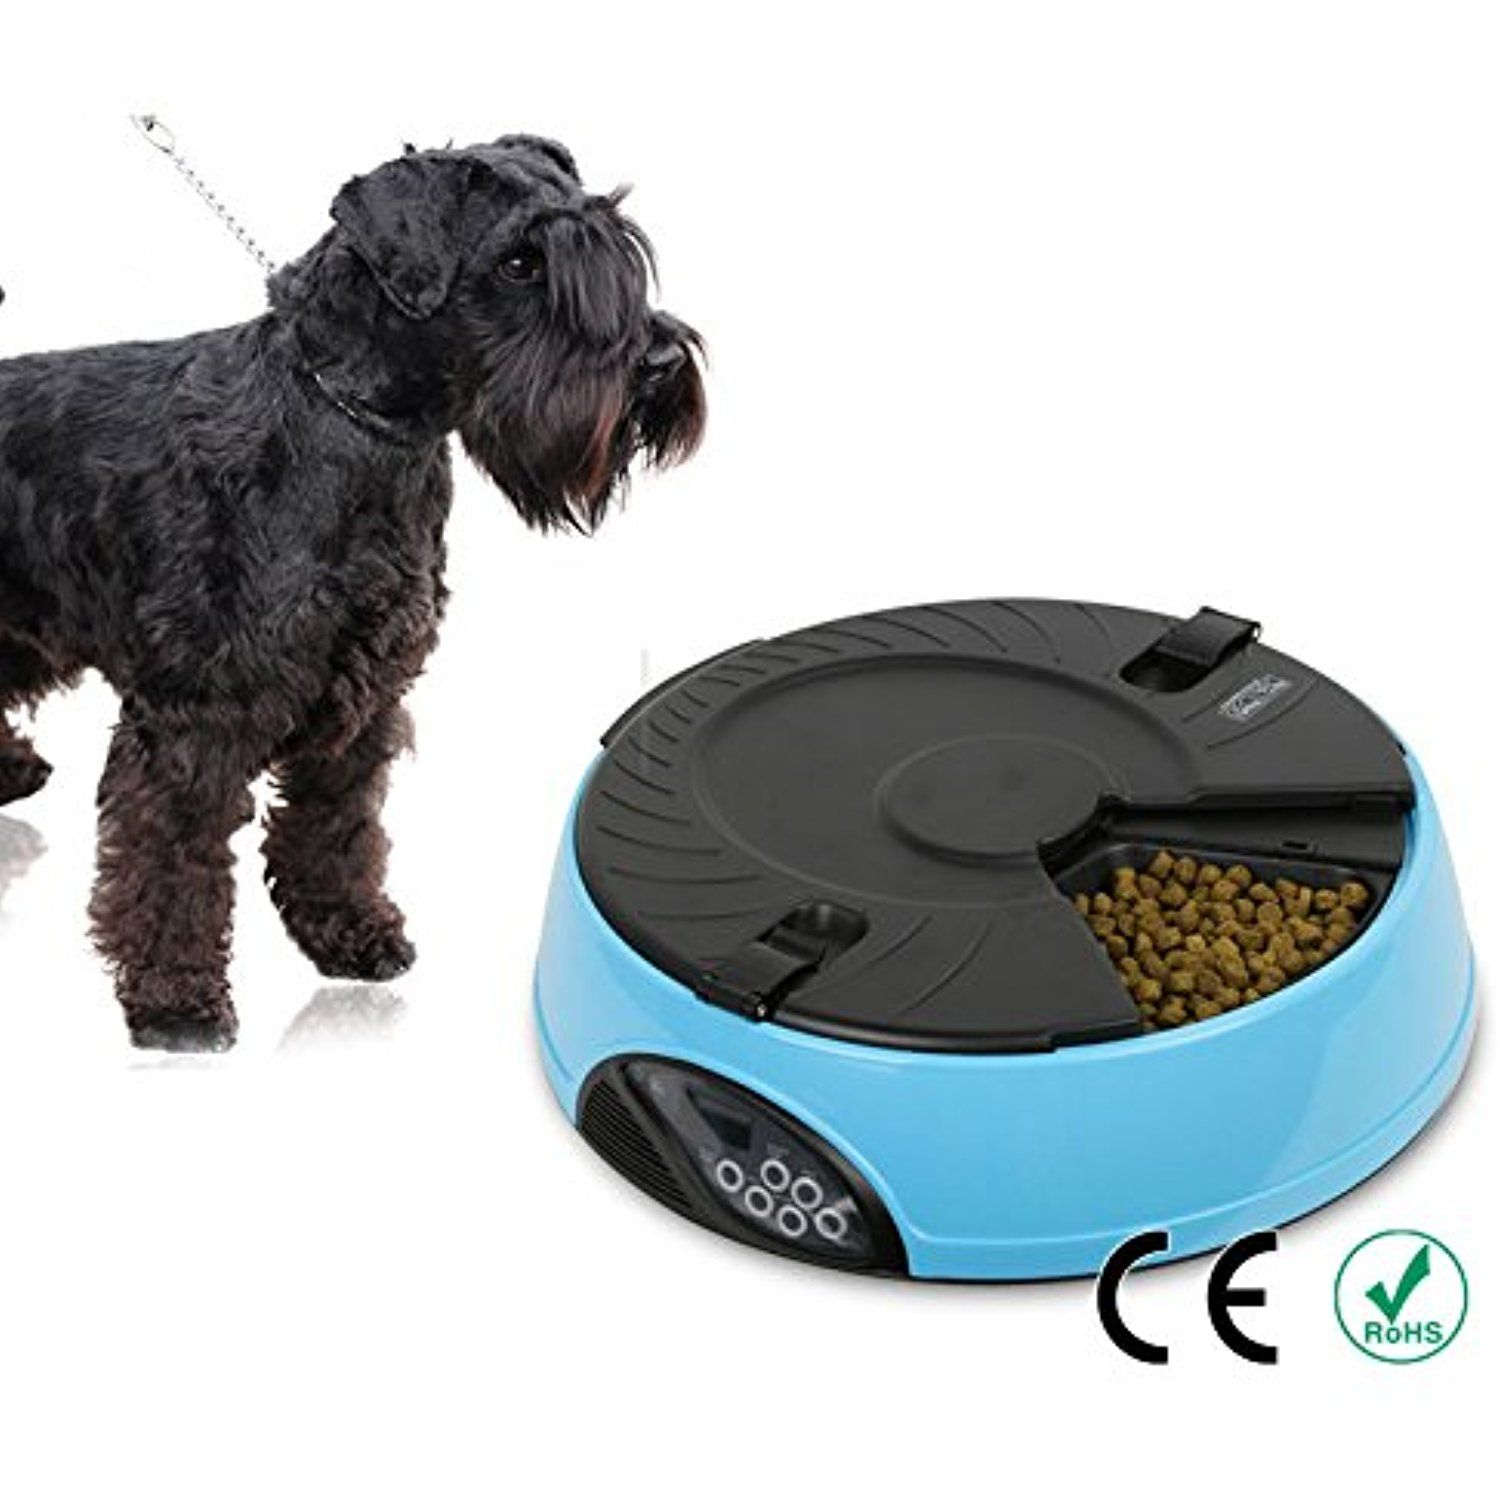 FastEngle Automatic Dog Feeder 6 Meals Programmable Timer